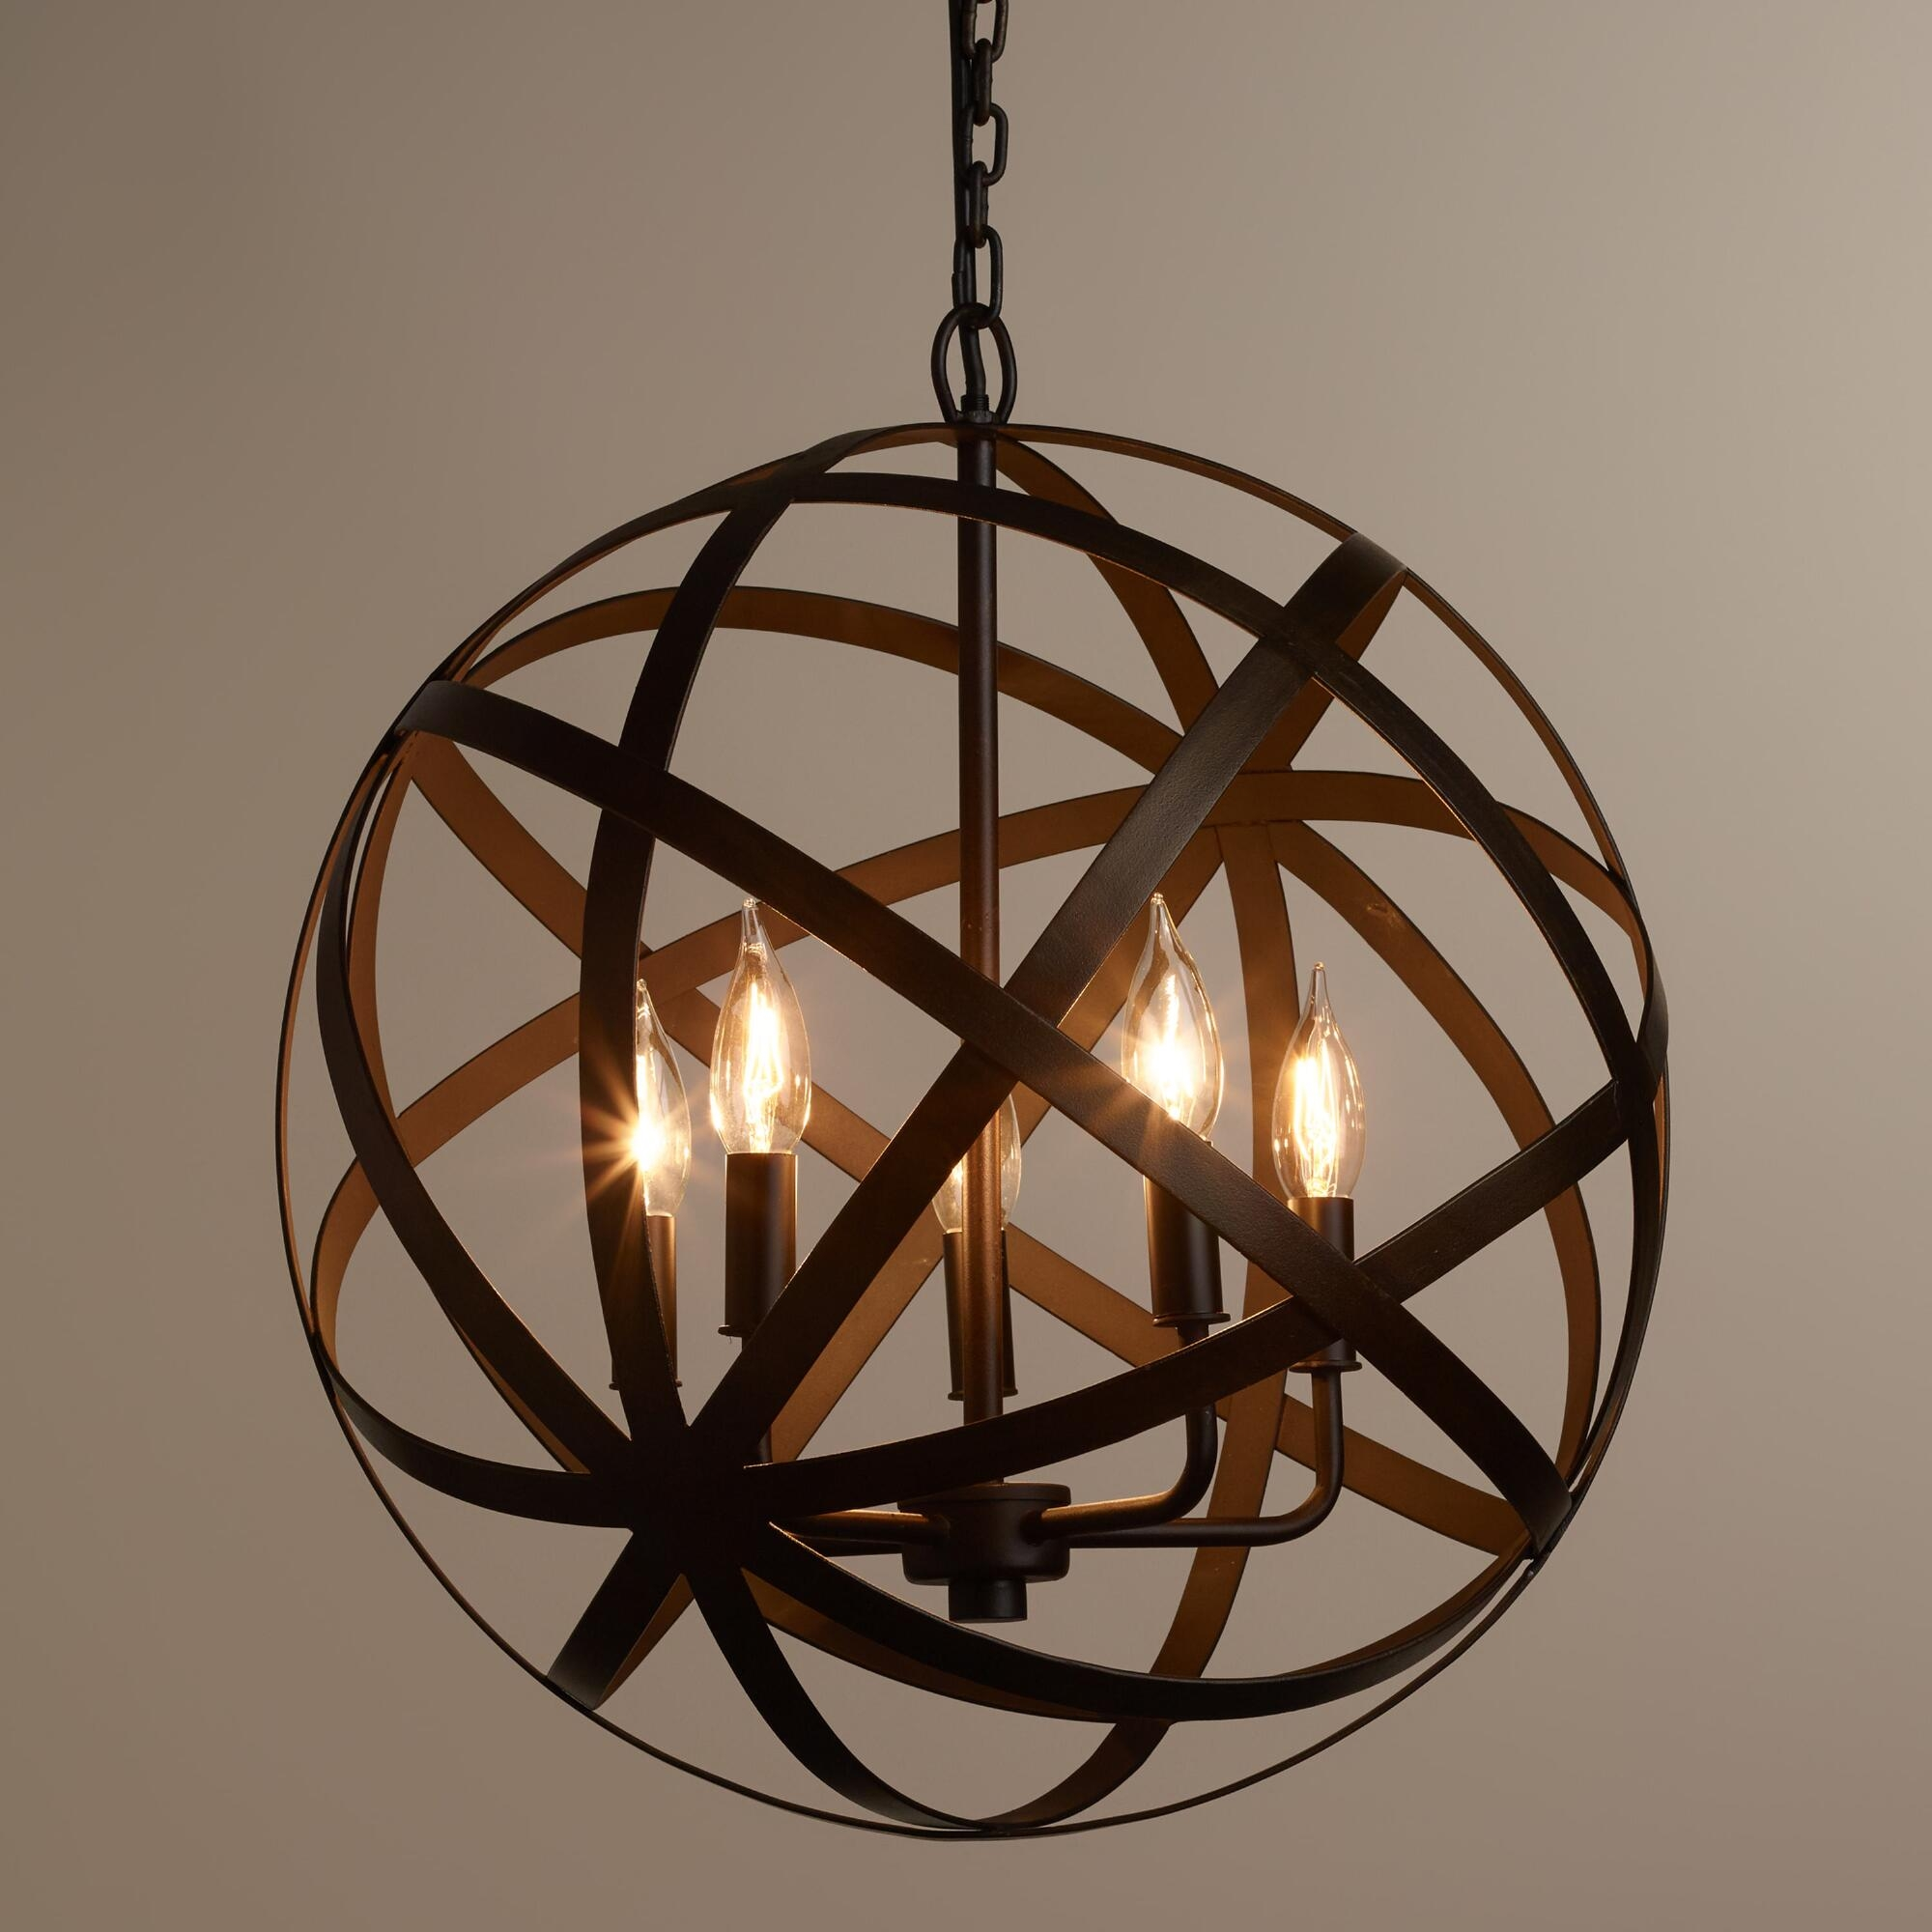 Lighting Over The Farmhouse Table The Winner Lighting Design For Cage Chandeliers (Image 9 of 15)